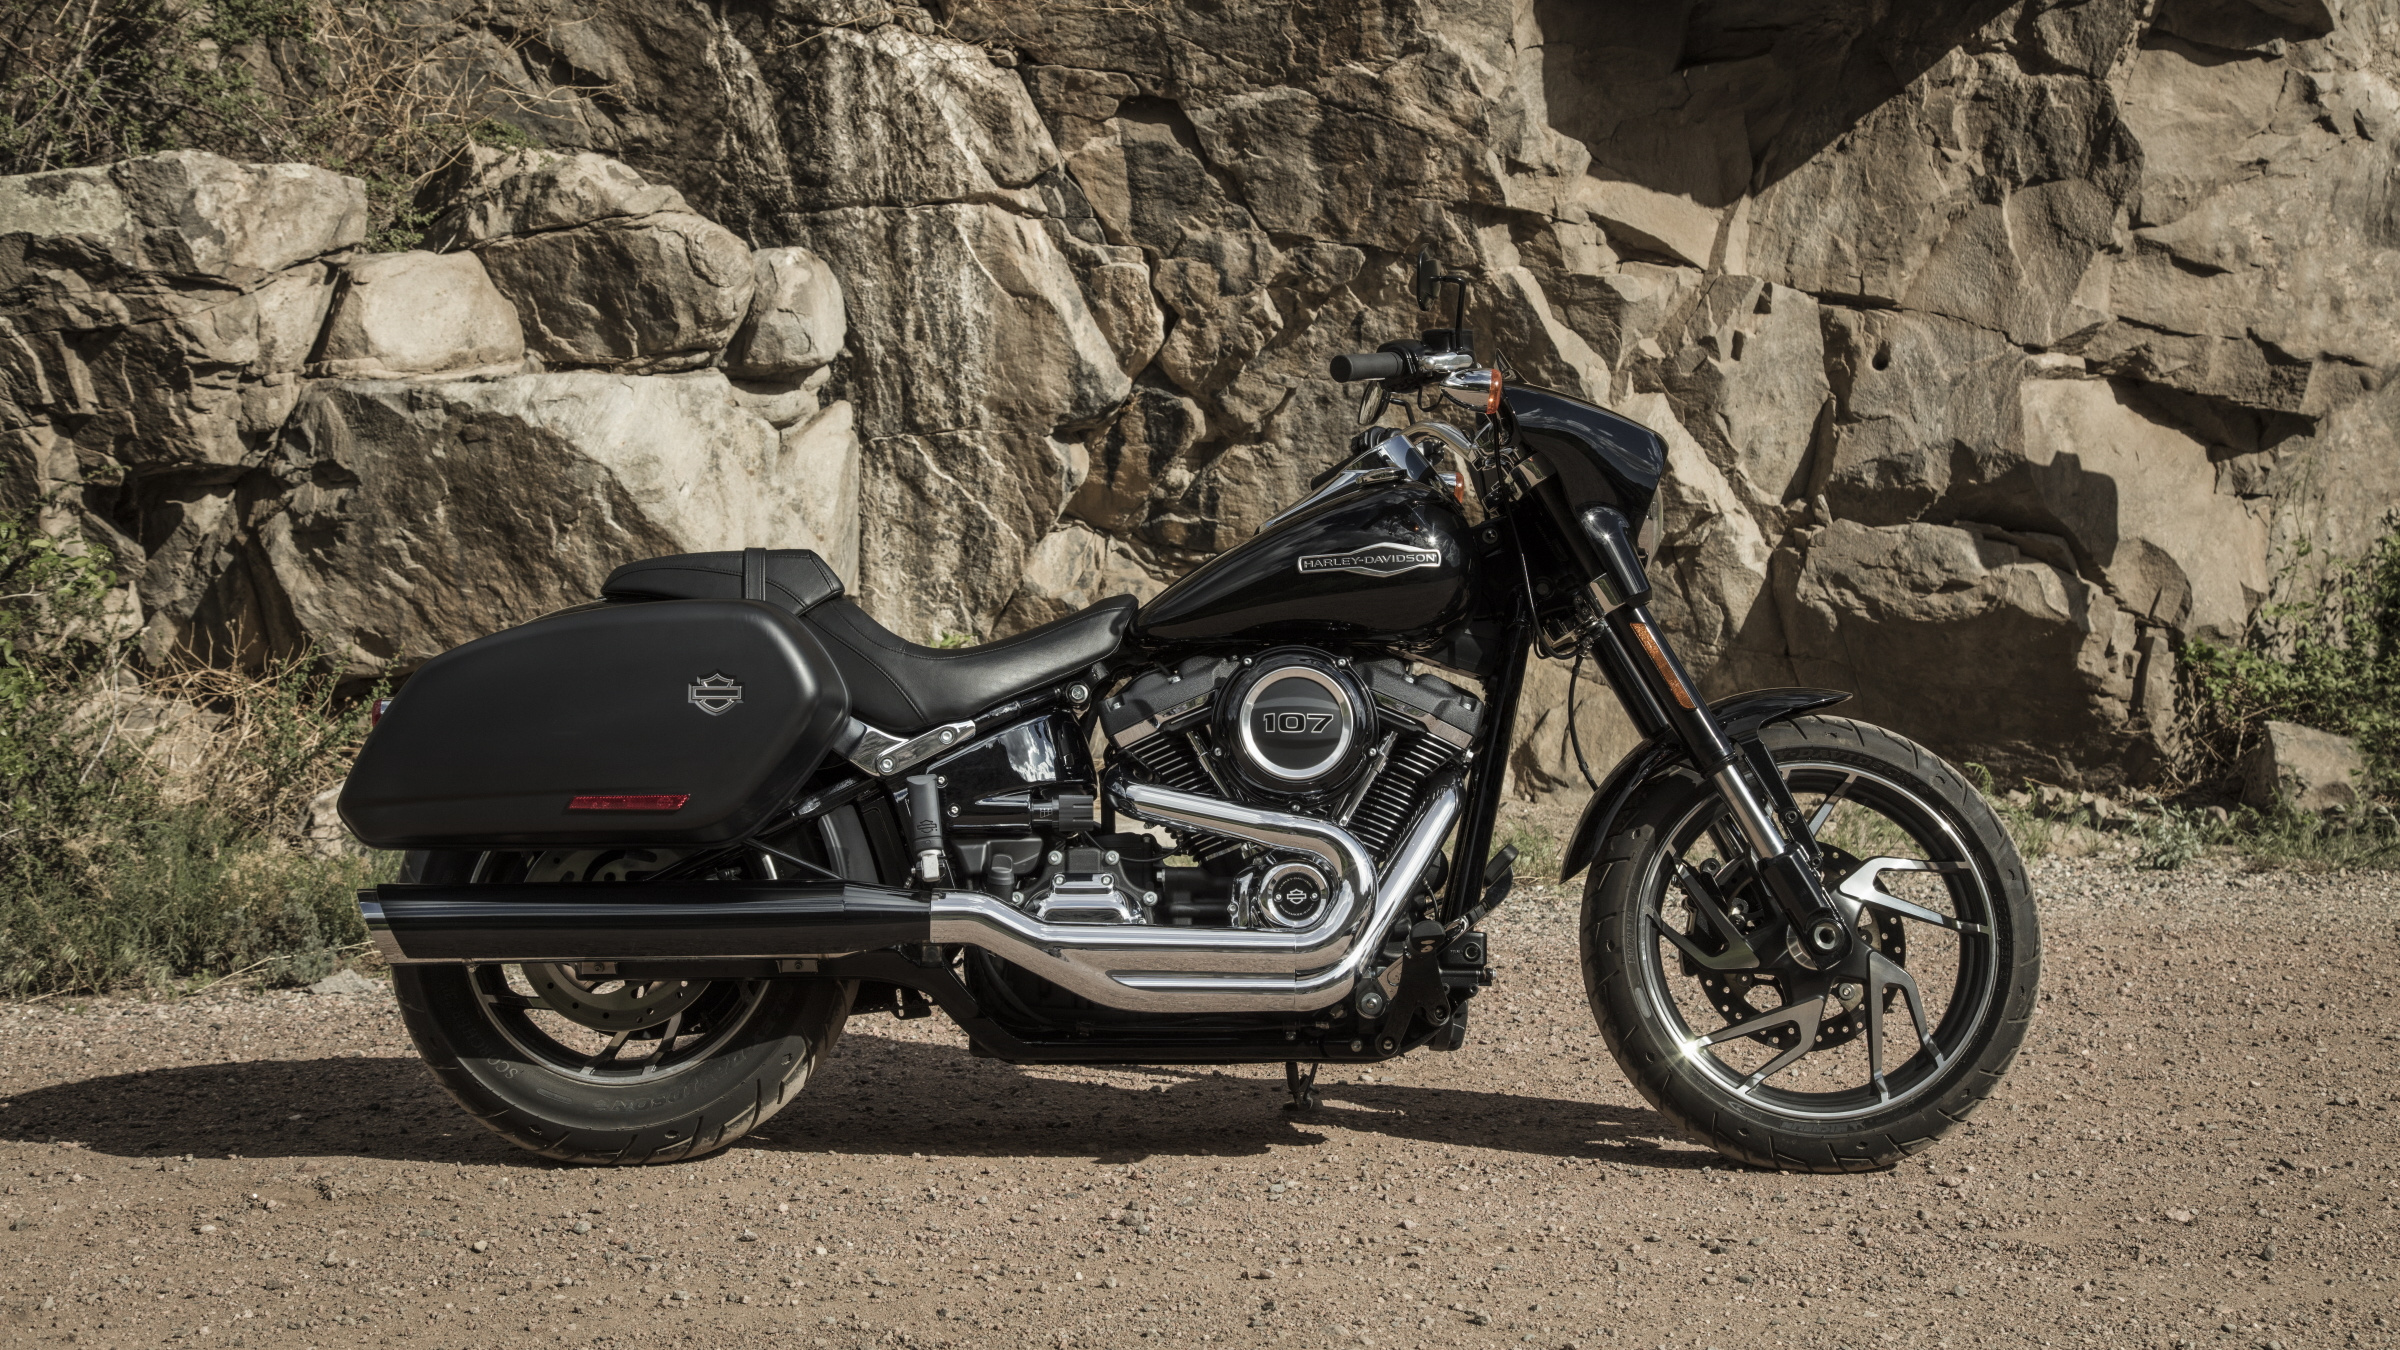 2018 - 2019 Harley-Davidson Sport Glide Pictures, Photos ...